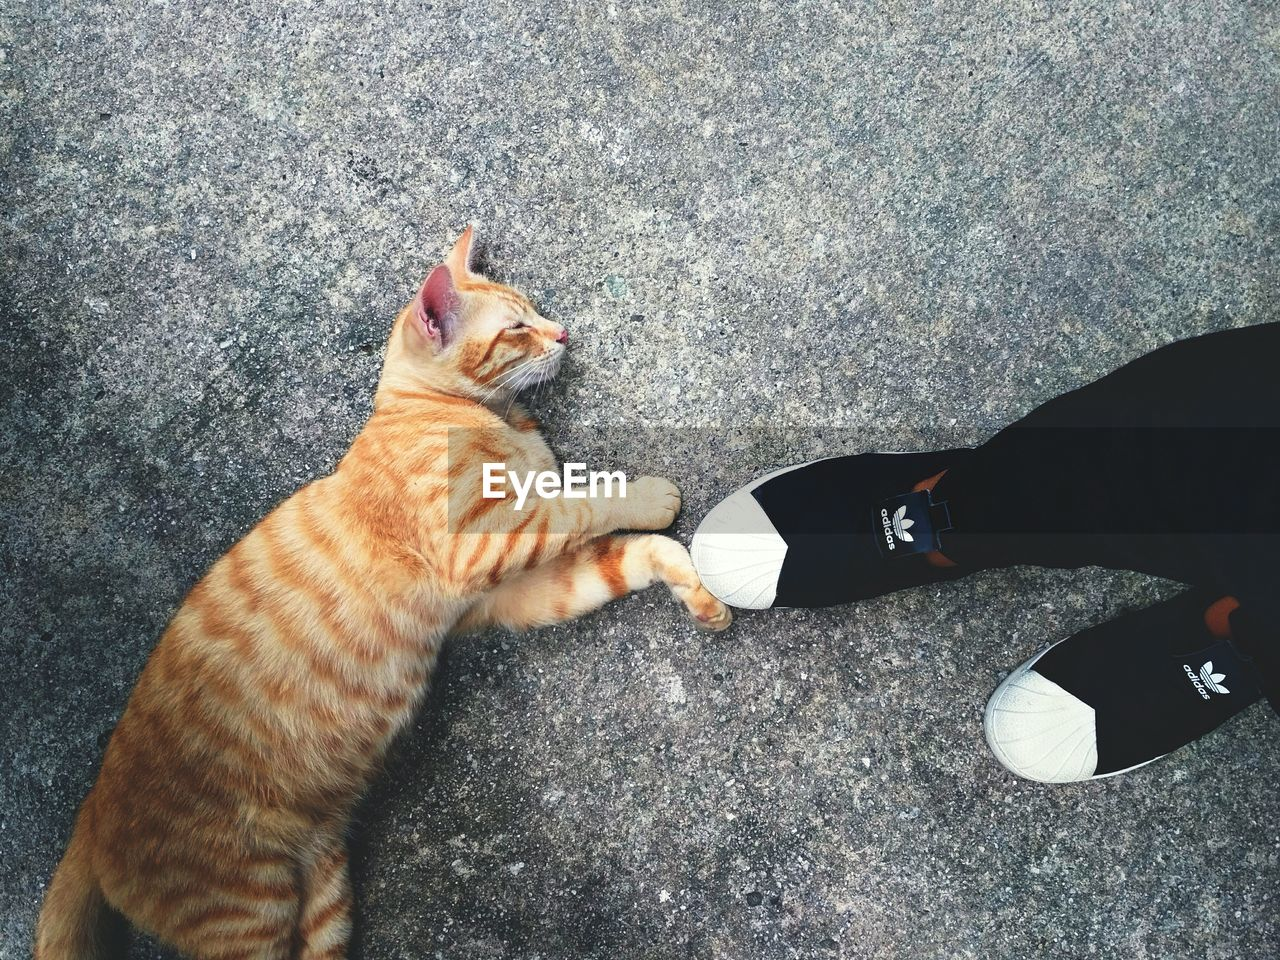 pets, domestic animals, domestic cat, high angle view, one animal, human body part, one person, real people, mammal, human leg, human hand, feline, low section, lifestyles, men, standing, day, outdoors, women, ginger cat, friendship, people